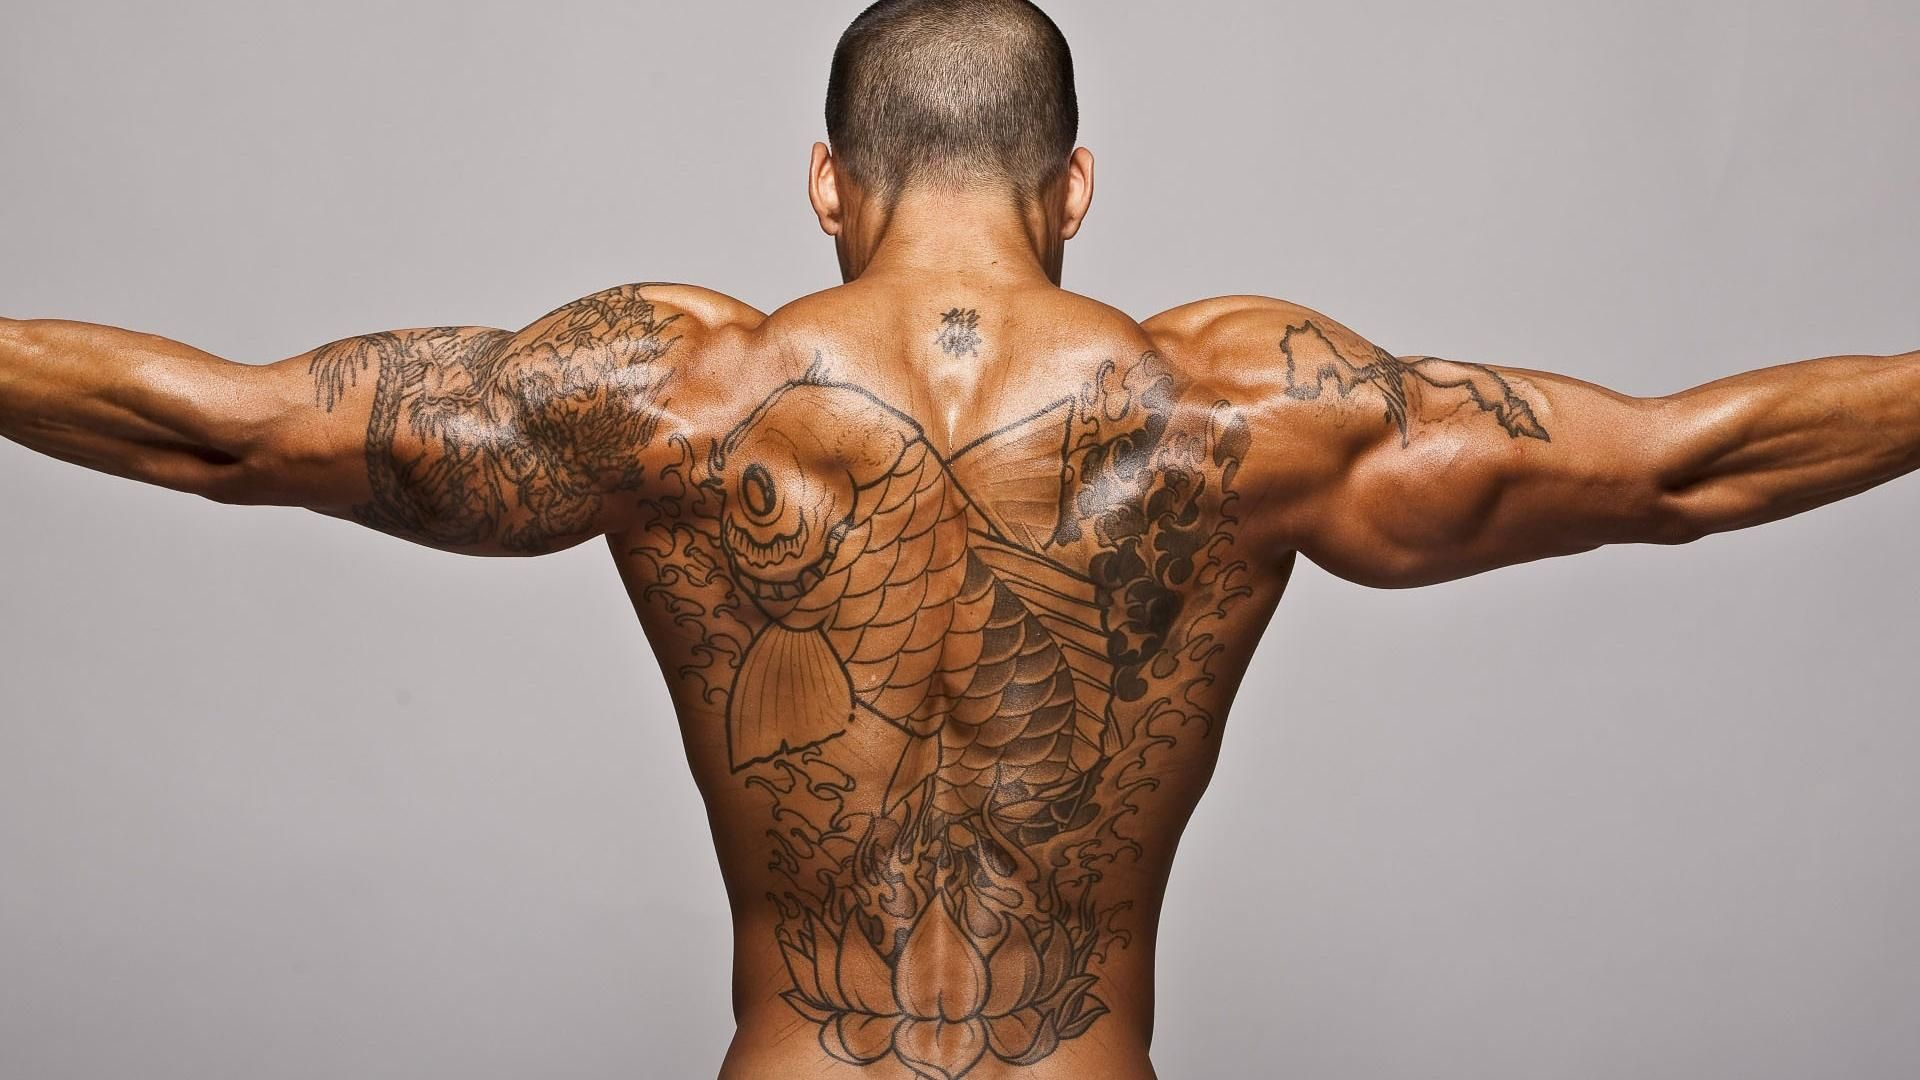 Hd wallpaper tattoo - Click Here To Download In Hd Format Tattoo Hd Wallpaper 23 Http